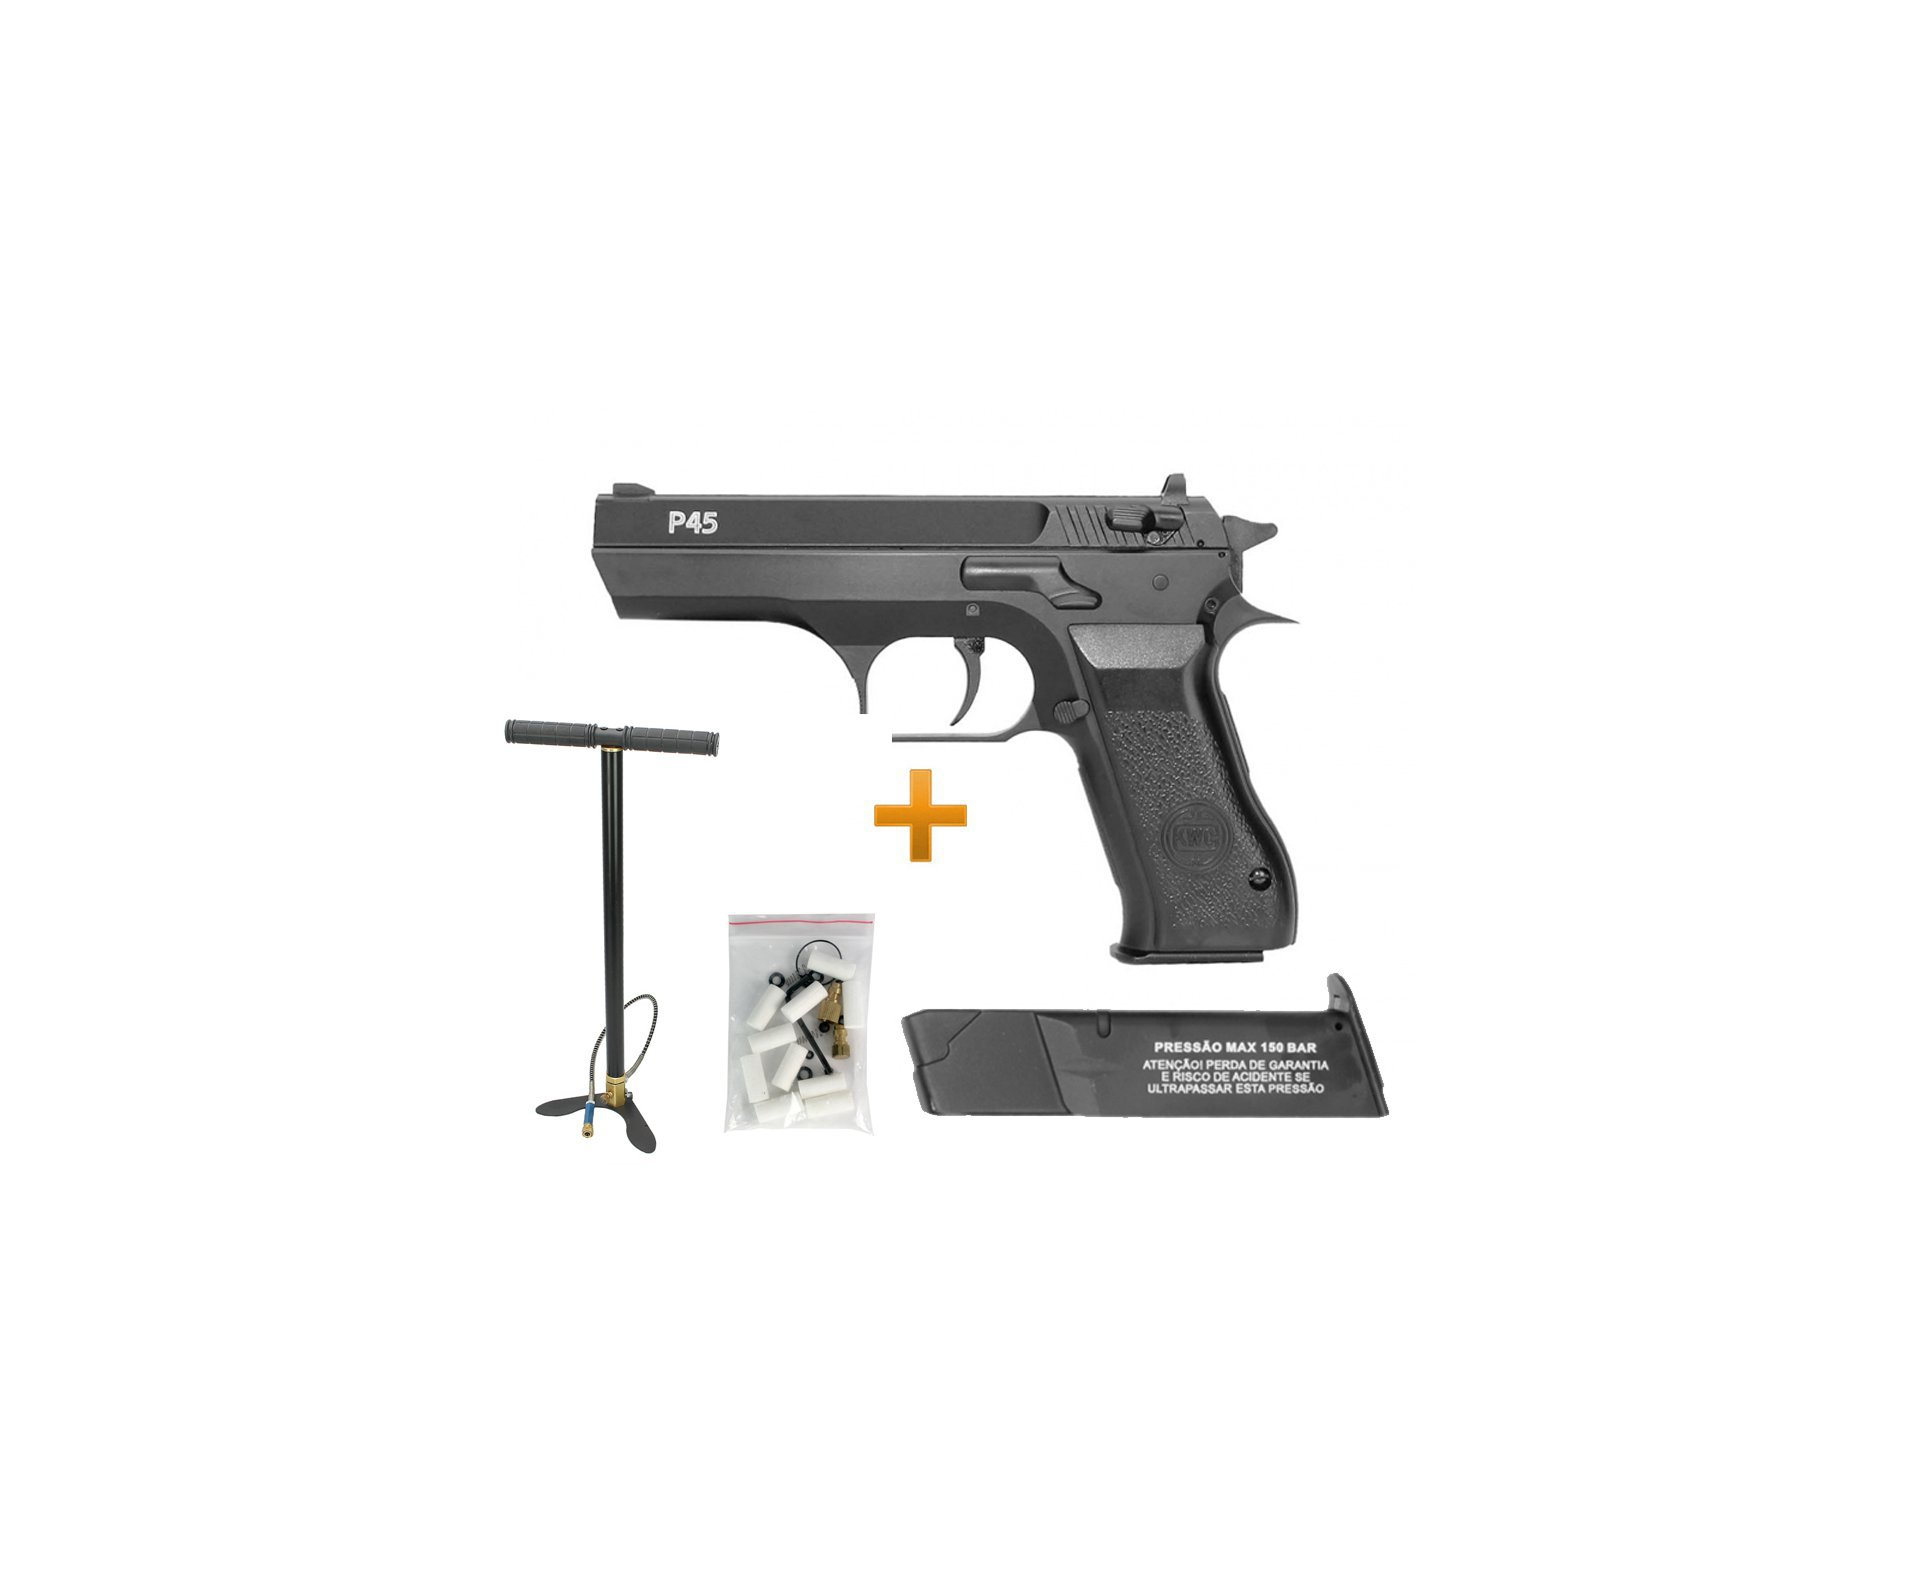 Pistola De Pressão Pcp Rossi Kwc P45  4,5mm Full Metal E Bomba Pcp